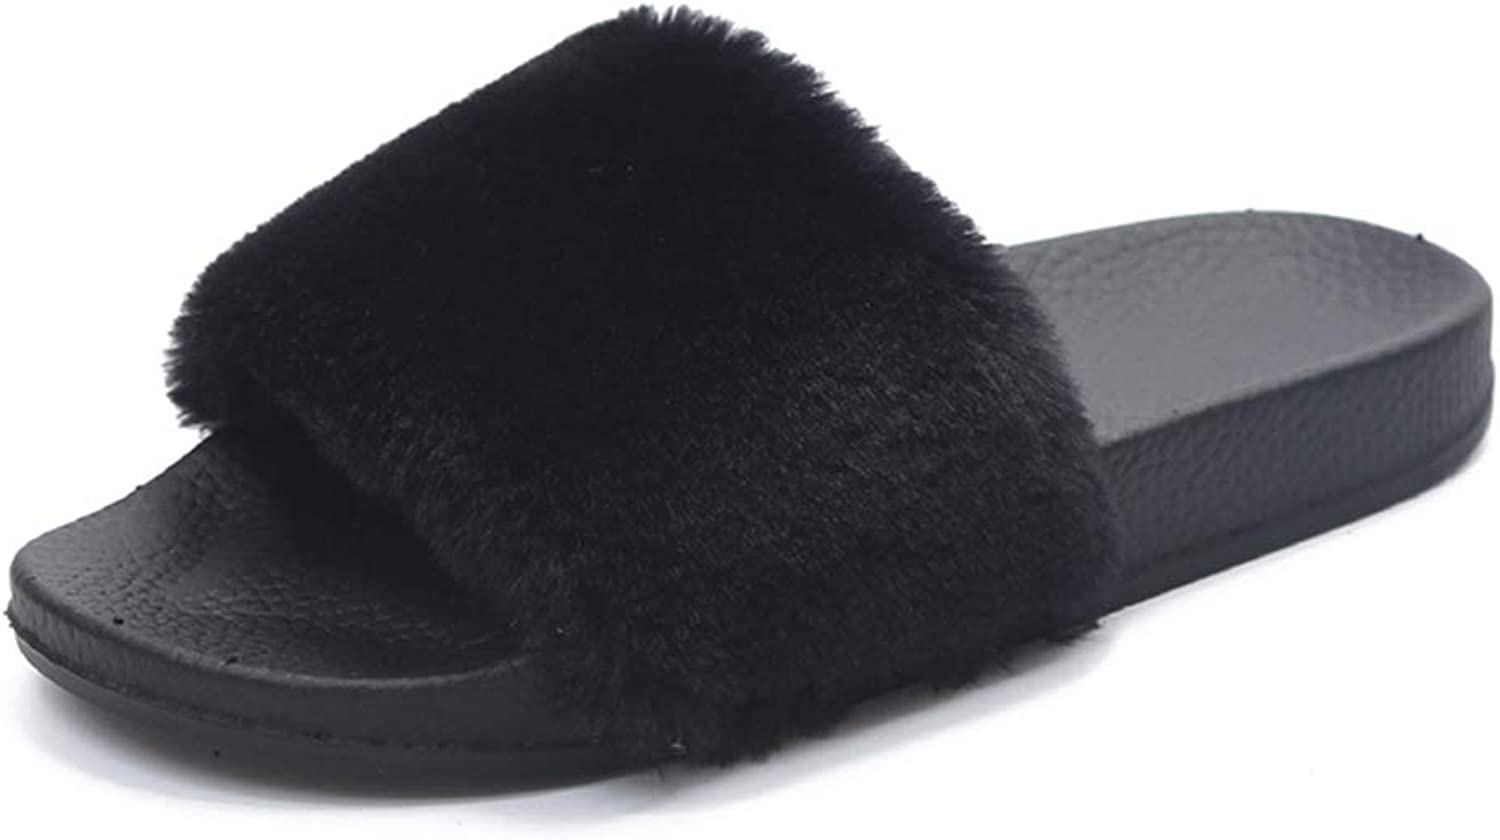 ASO-SLING Women's Fluffy Fur Slippers Open Toe Soft Slip On Flat Comfortable Warm Home shoes